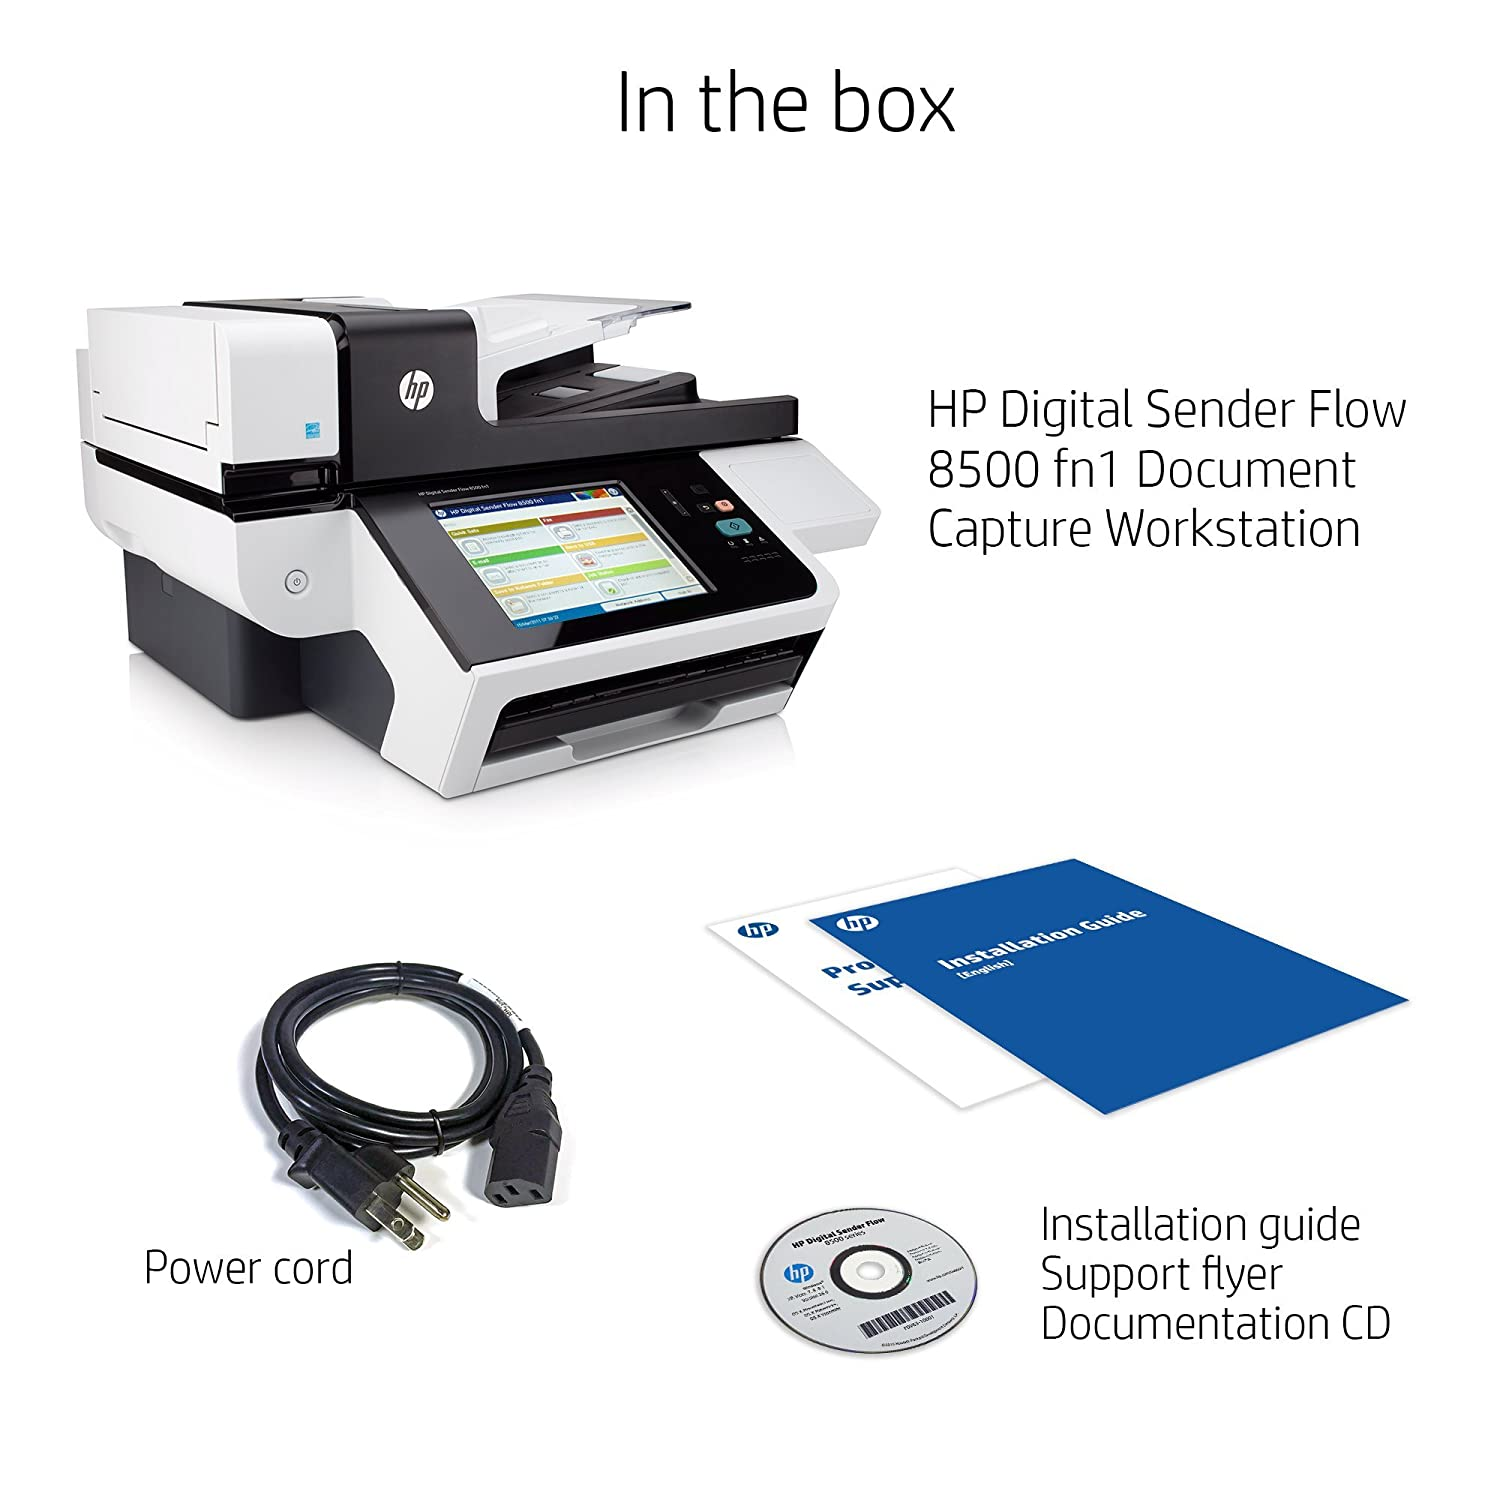 hp digital sender flow 8500 fn1 firmware